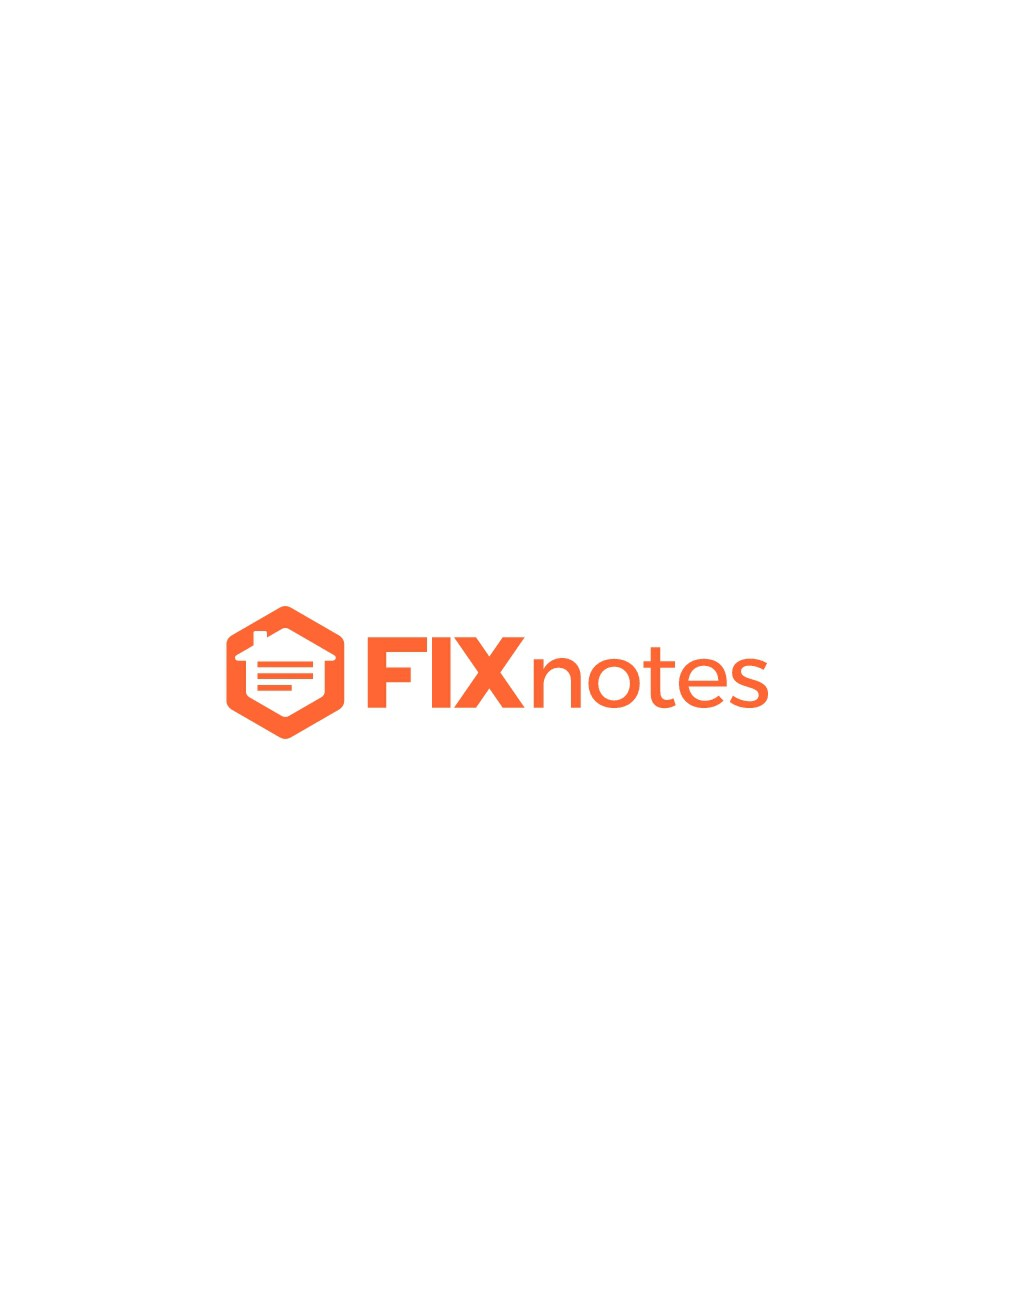 FIXnotes needs a logo that investors & entrepreneurs everywhere can TRUST